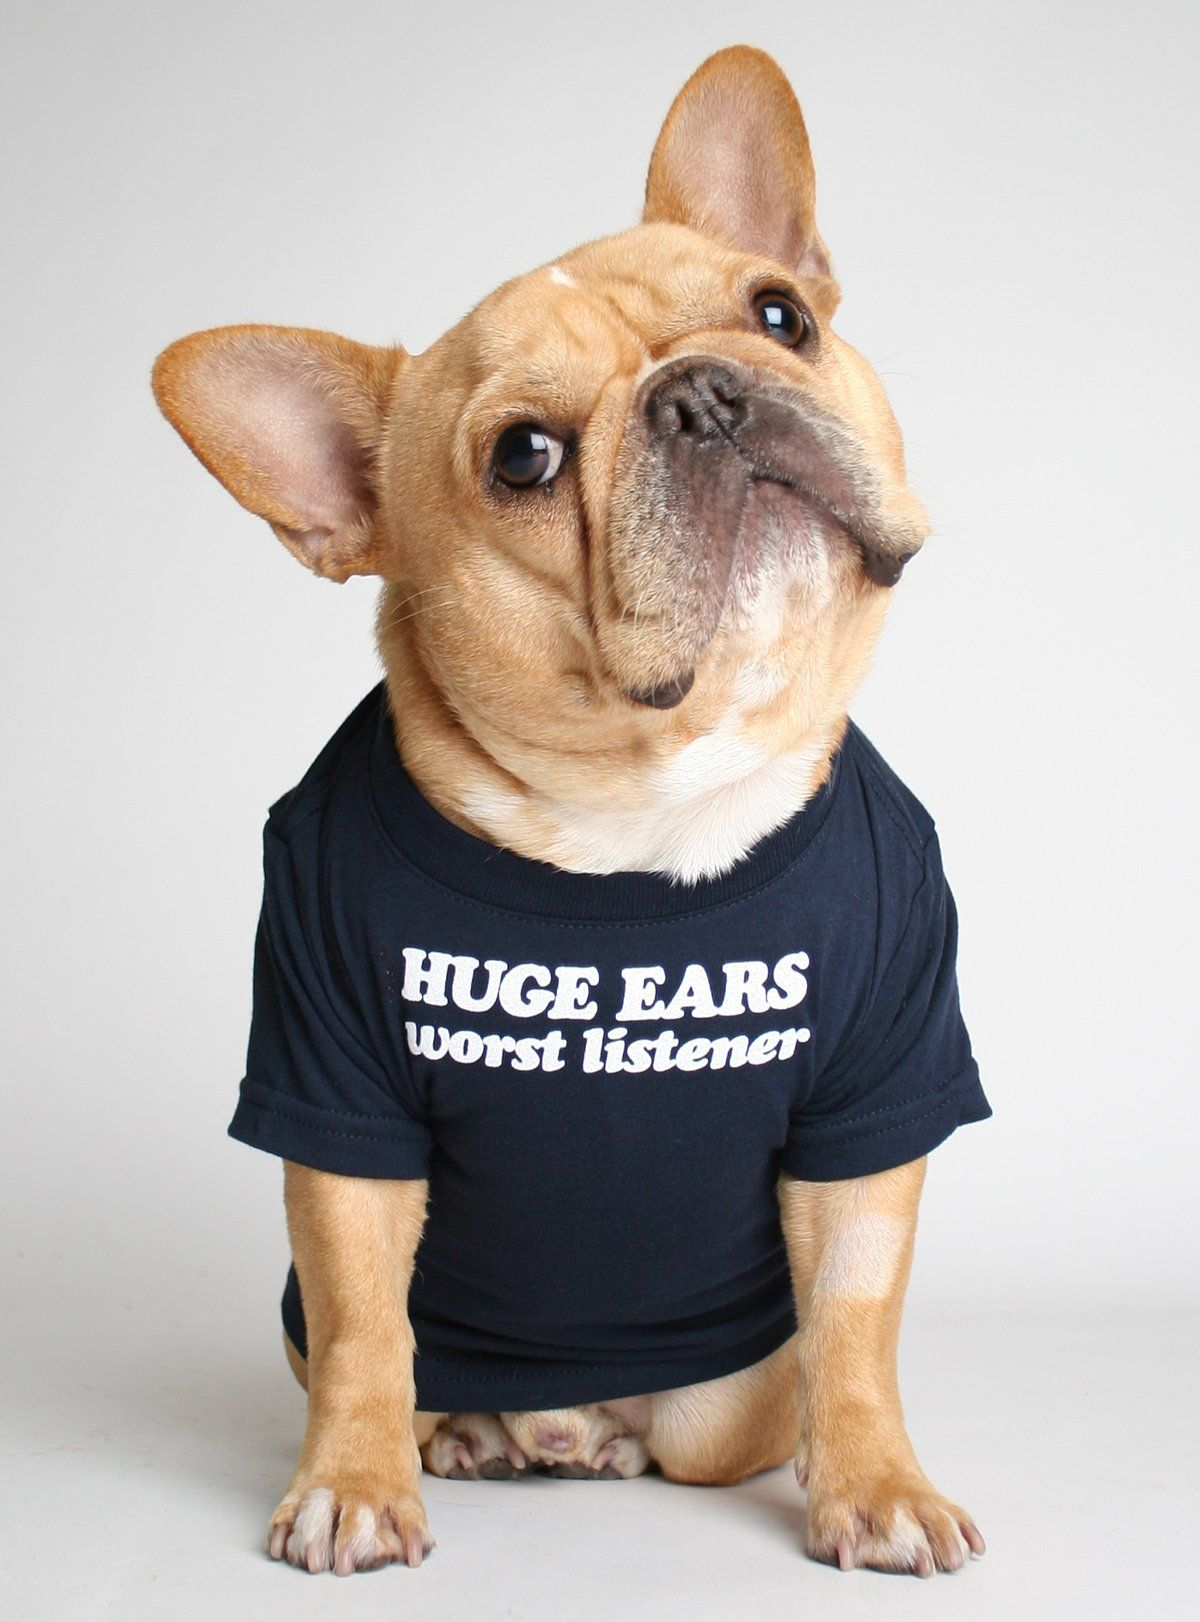 Huge Ears Worst Listener Dog Tee French Bulldog Puppies Bulldog